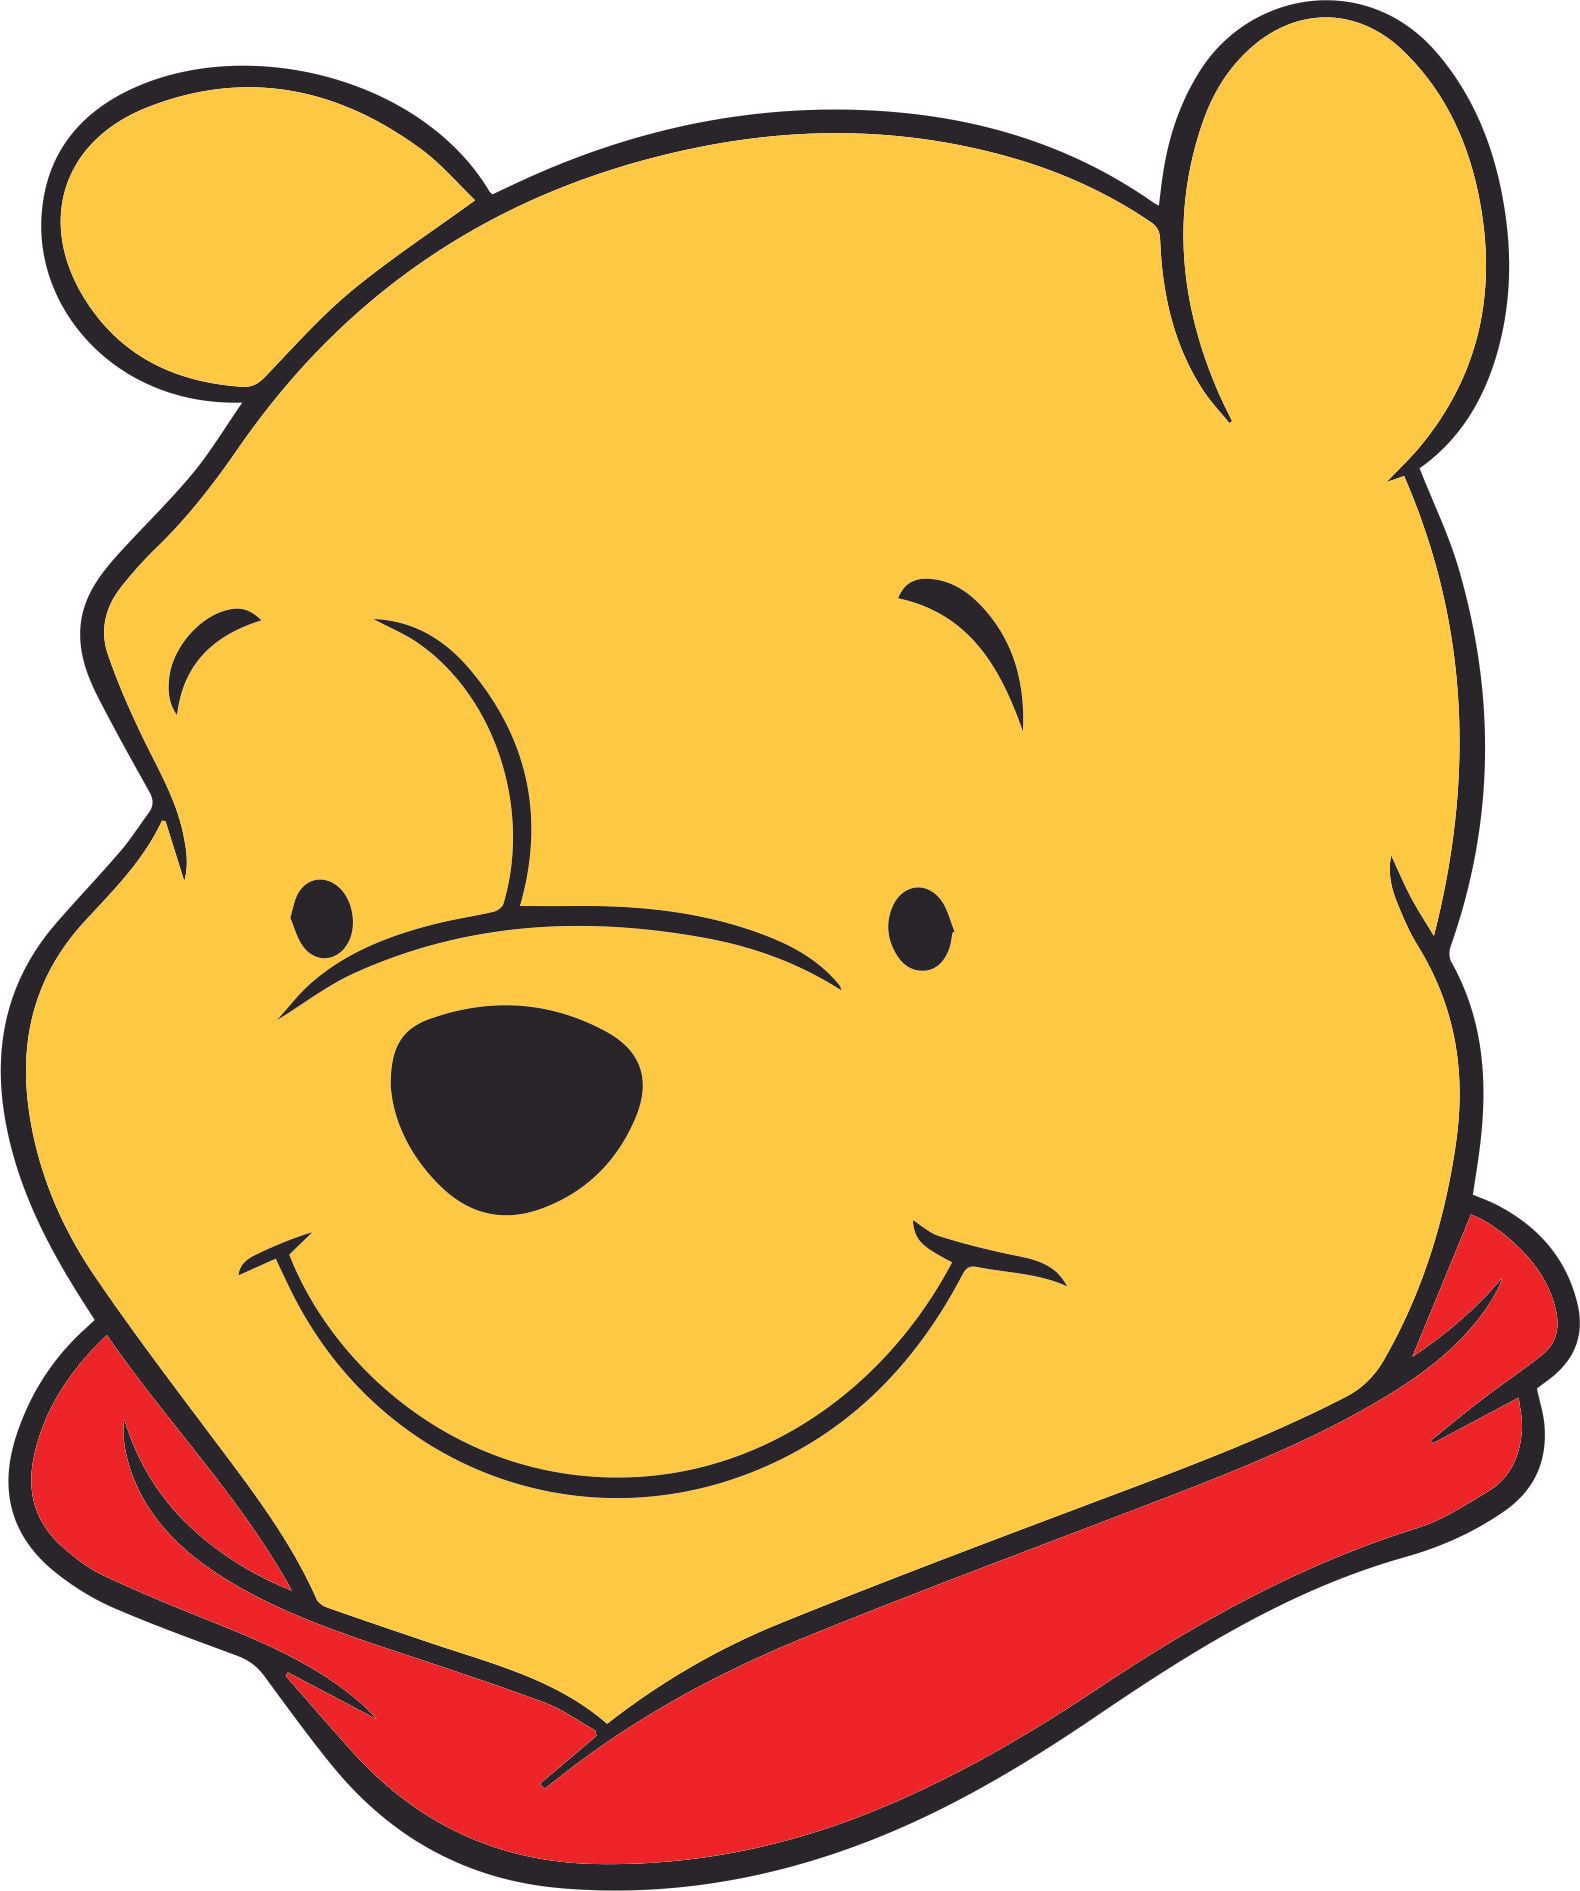 Winnie The Pooh Happy Smiling Face Customized Wall Decal ...